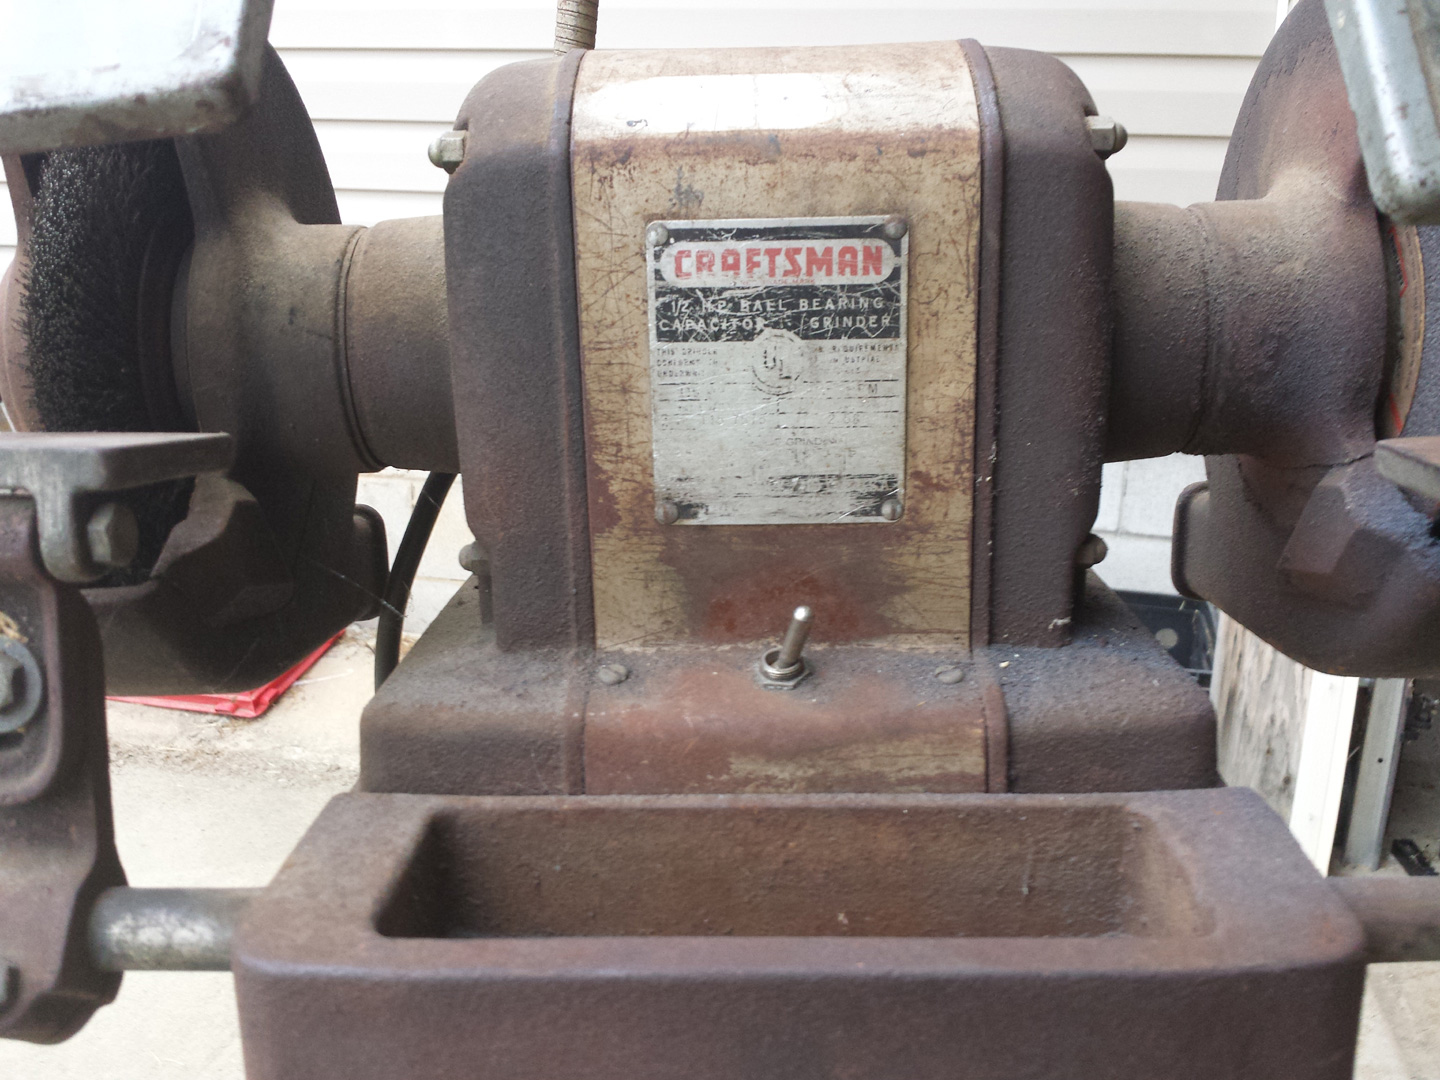 Greatest Craftsman 115.7575 Pre-Block Grinder Restoration [Part 1  TZ86